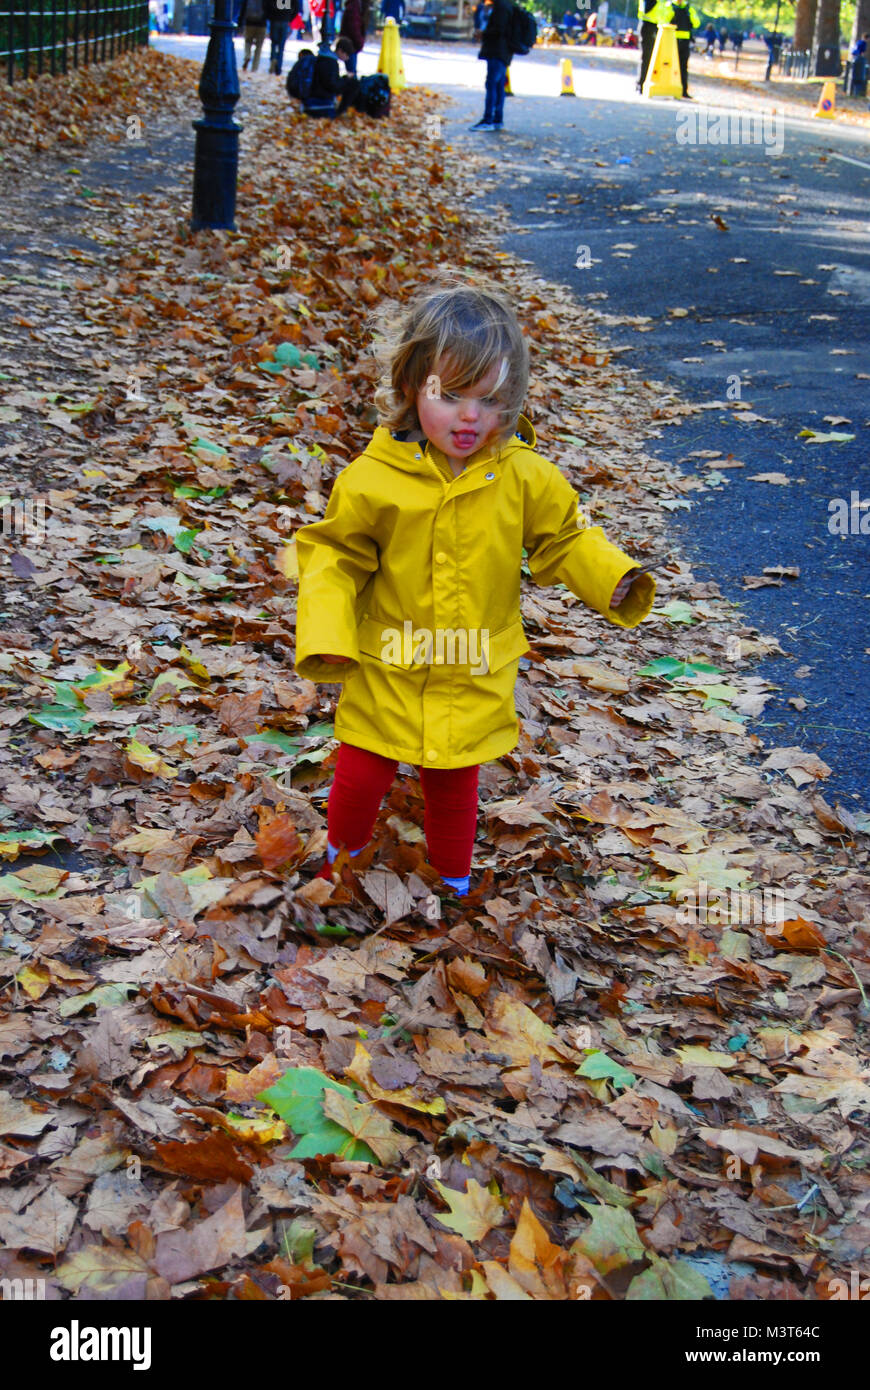 Playing in Leaves Stock Photo